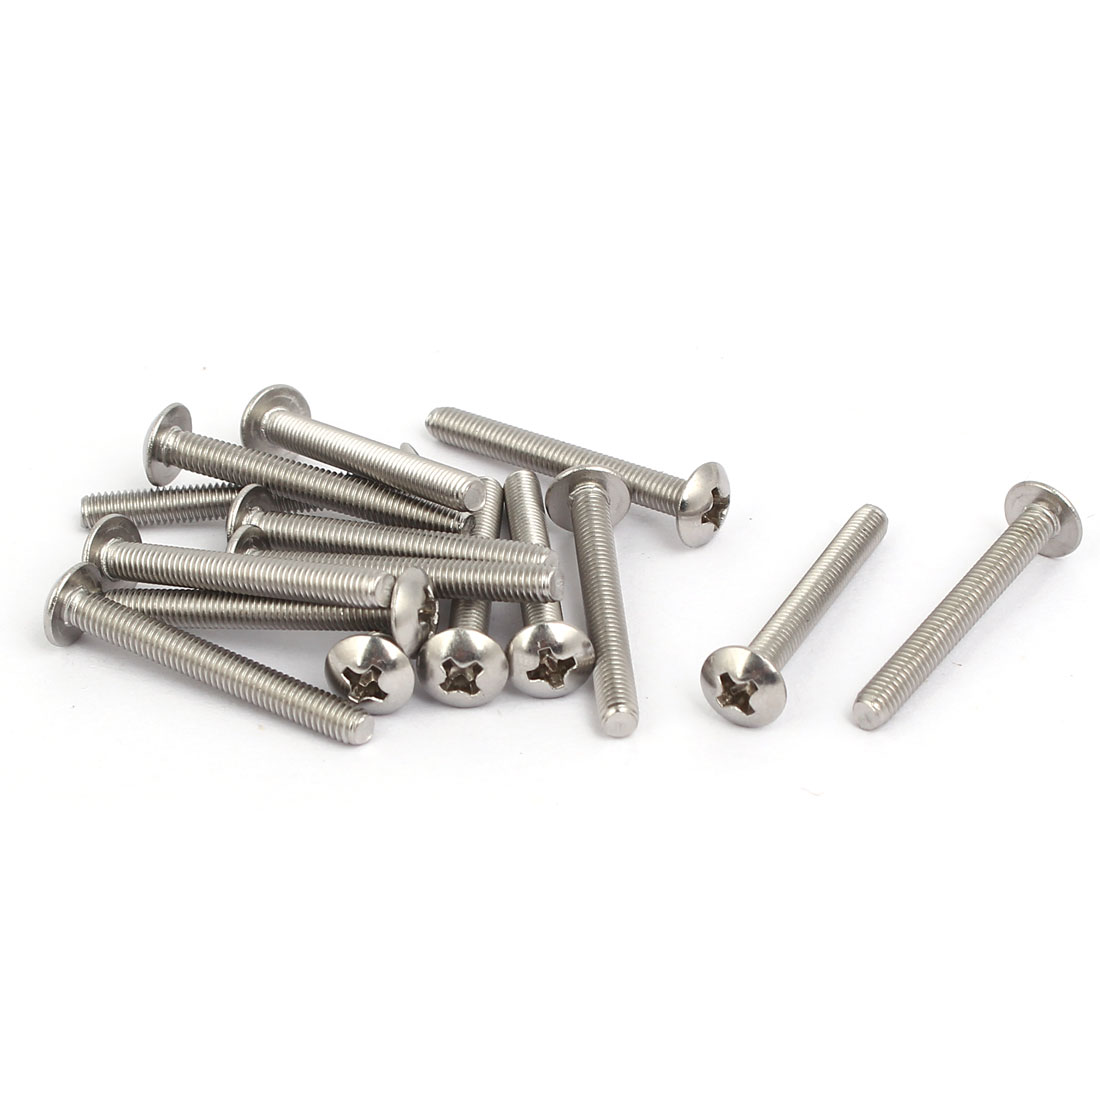 M3 x 25mm 316 Stainless Steel Truss Phillips Head Machine Screws 15pcs